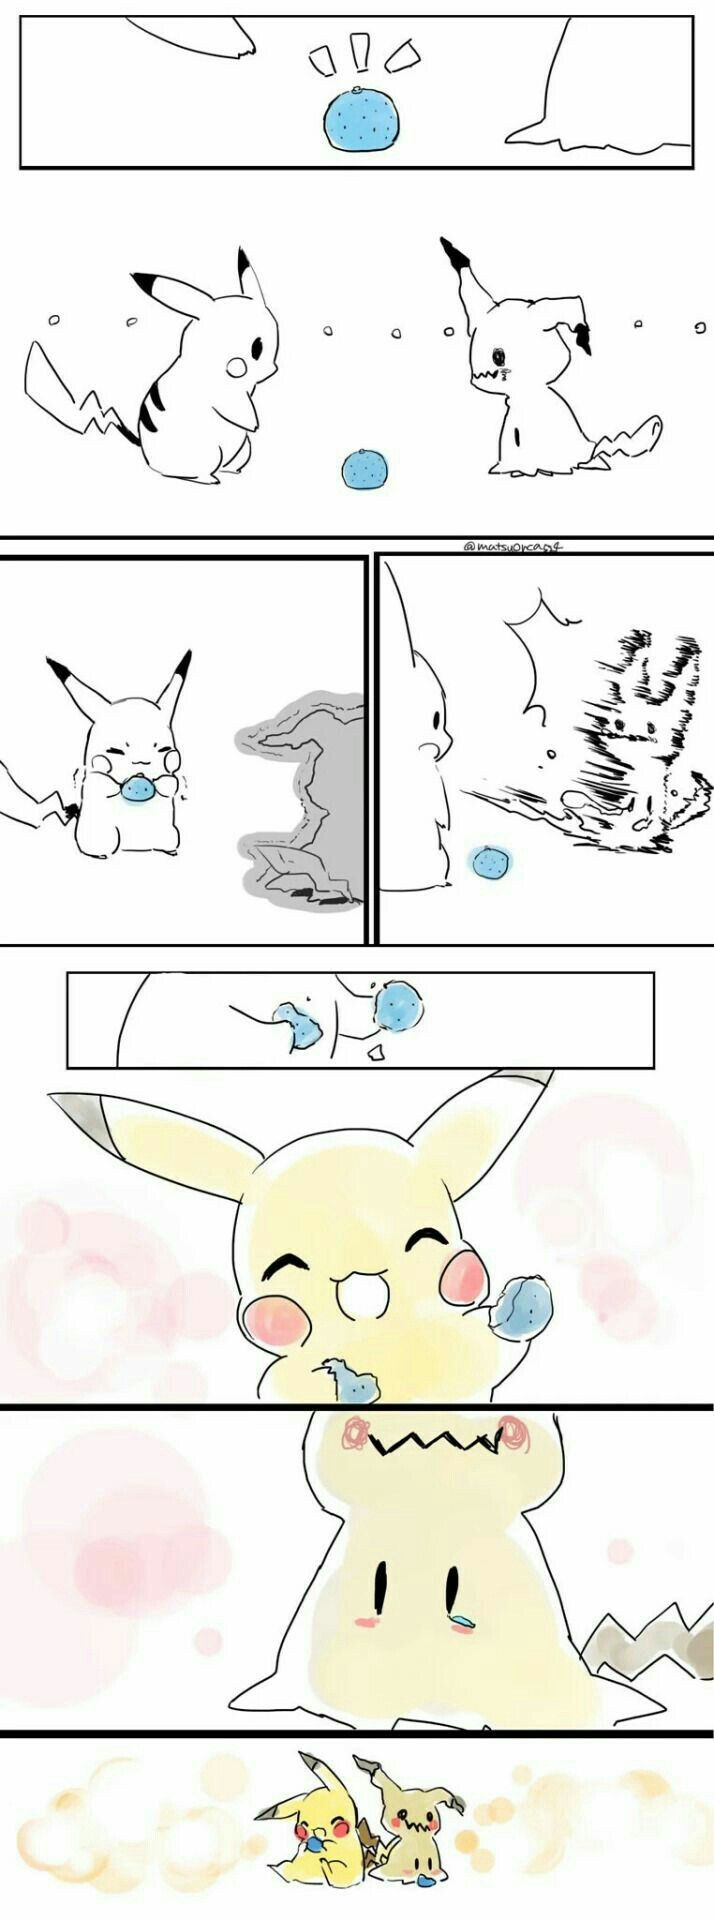 Funny pokemon pikachu remarkable, the